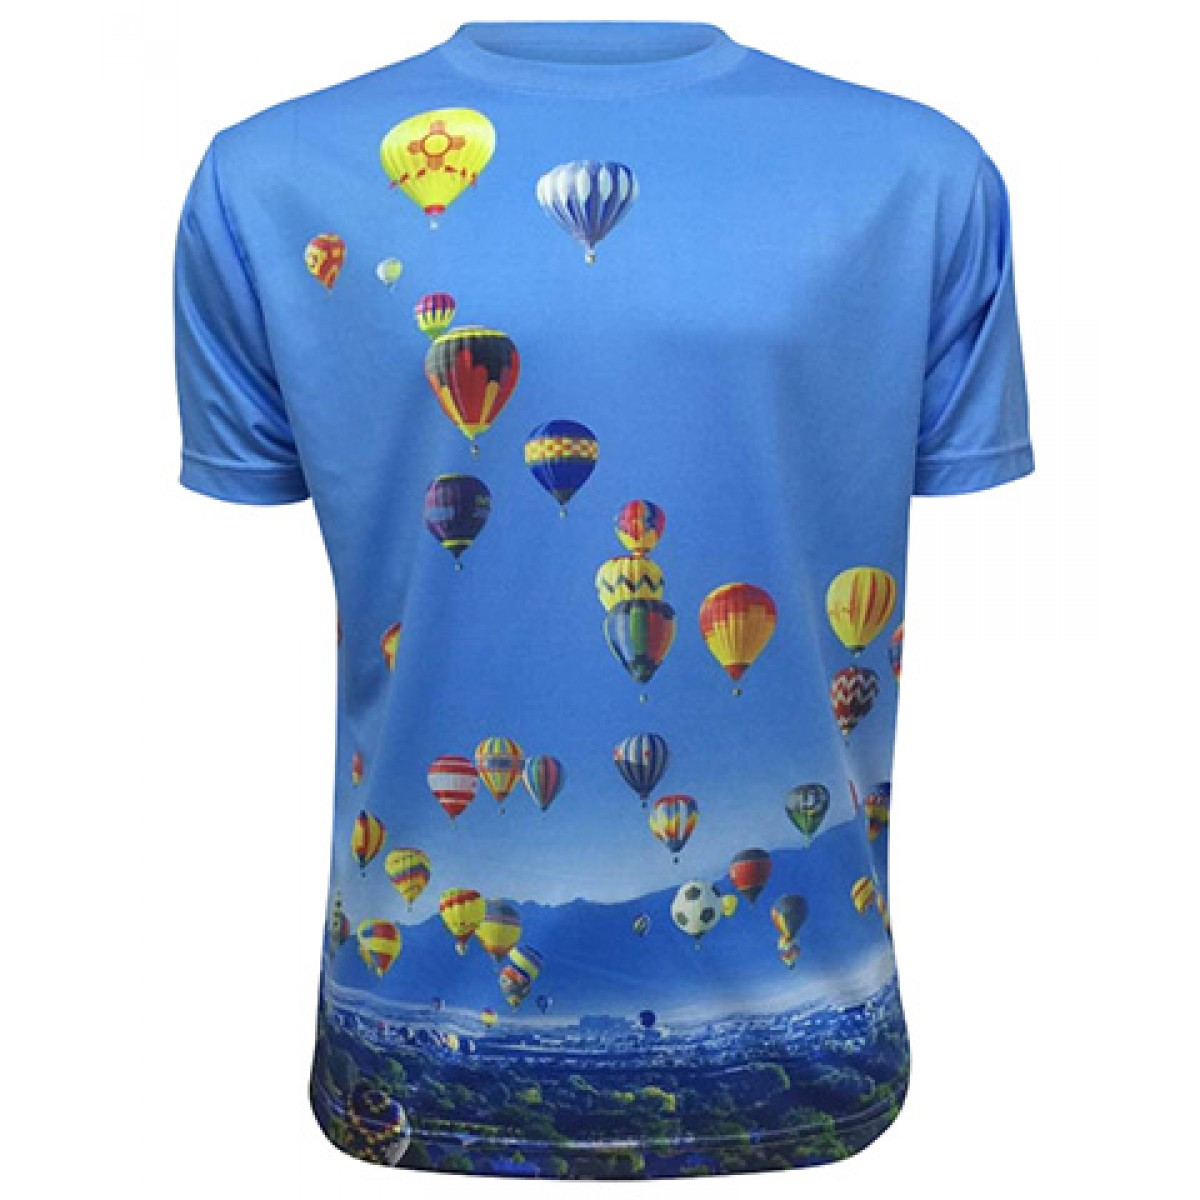 AIBF Sublimated Short Sleeve-Blue-YL